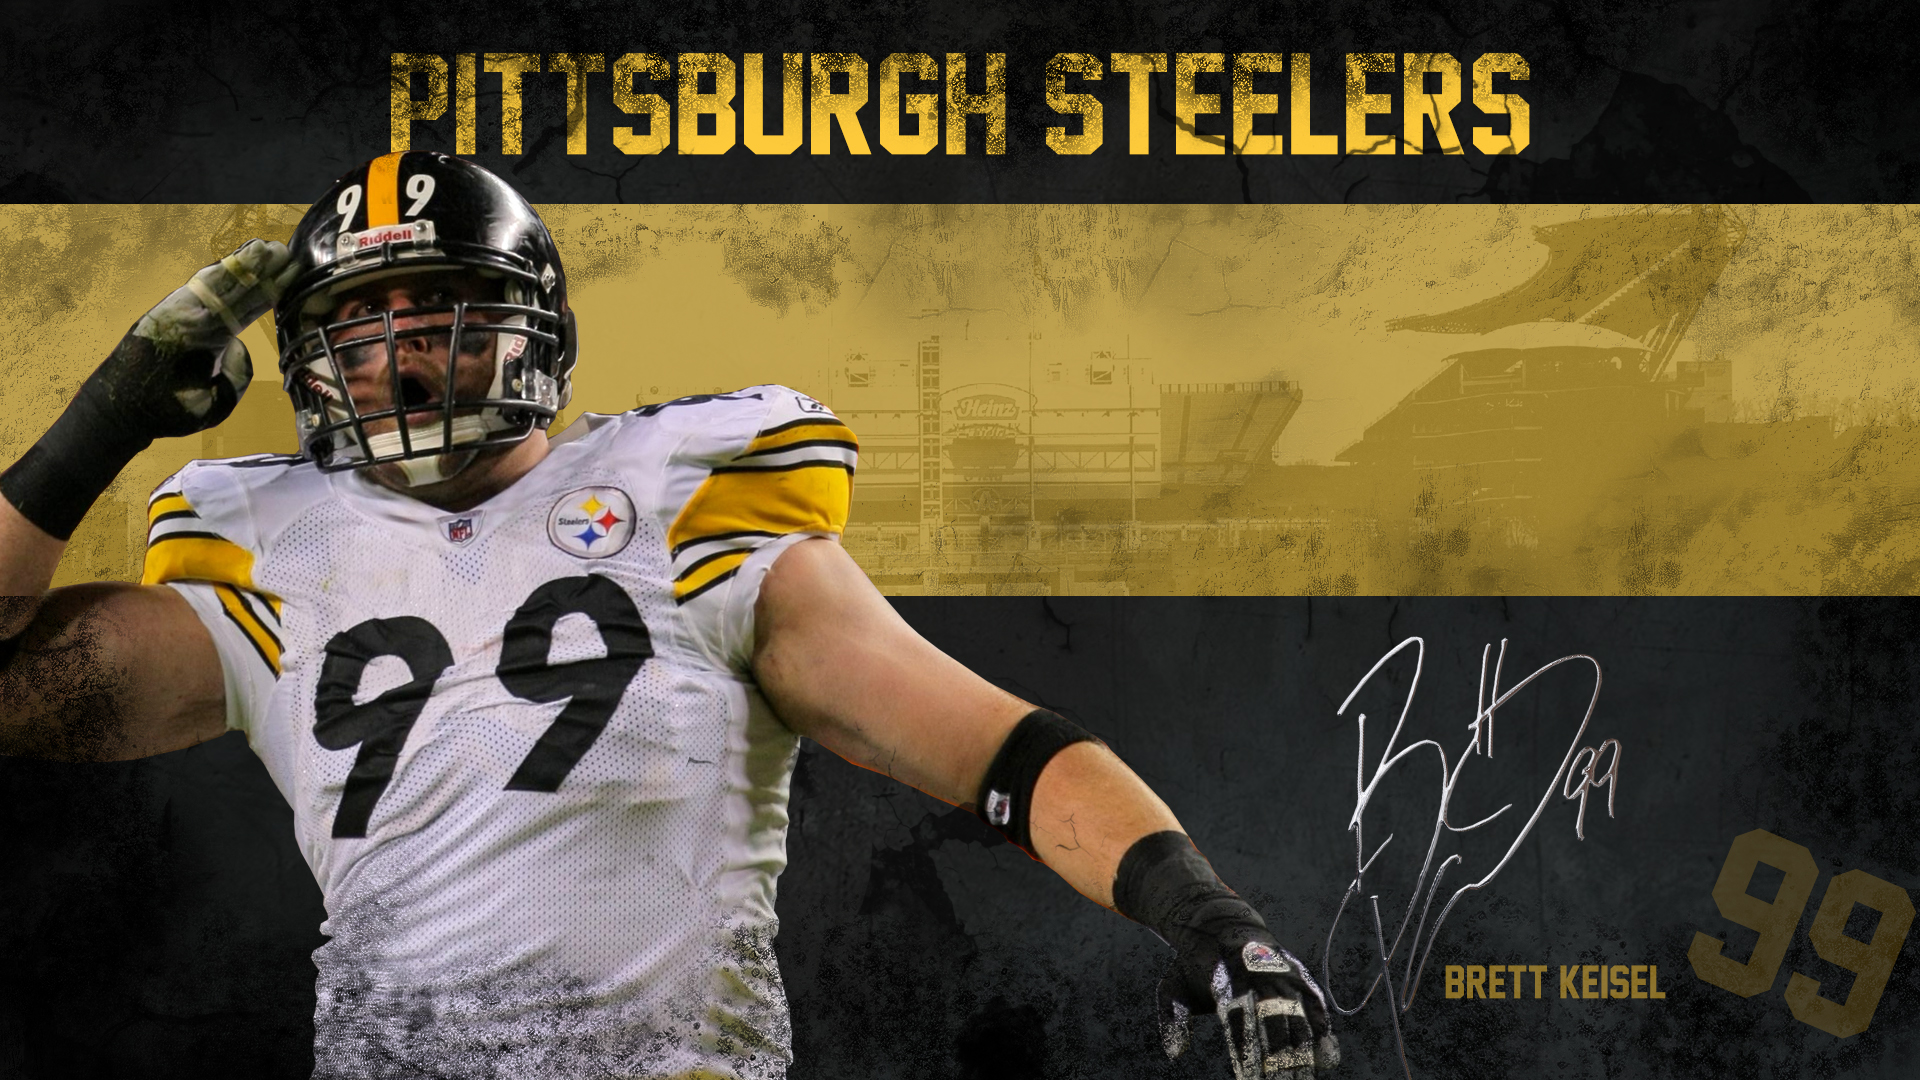 Steelers wallpaper wallpaper ever Pittsburgh Steelers wallpapers 1920x1080